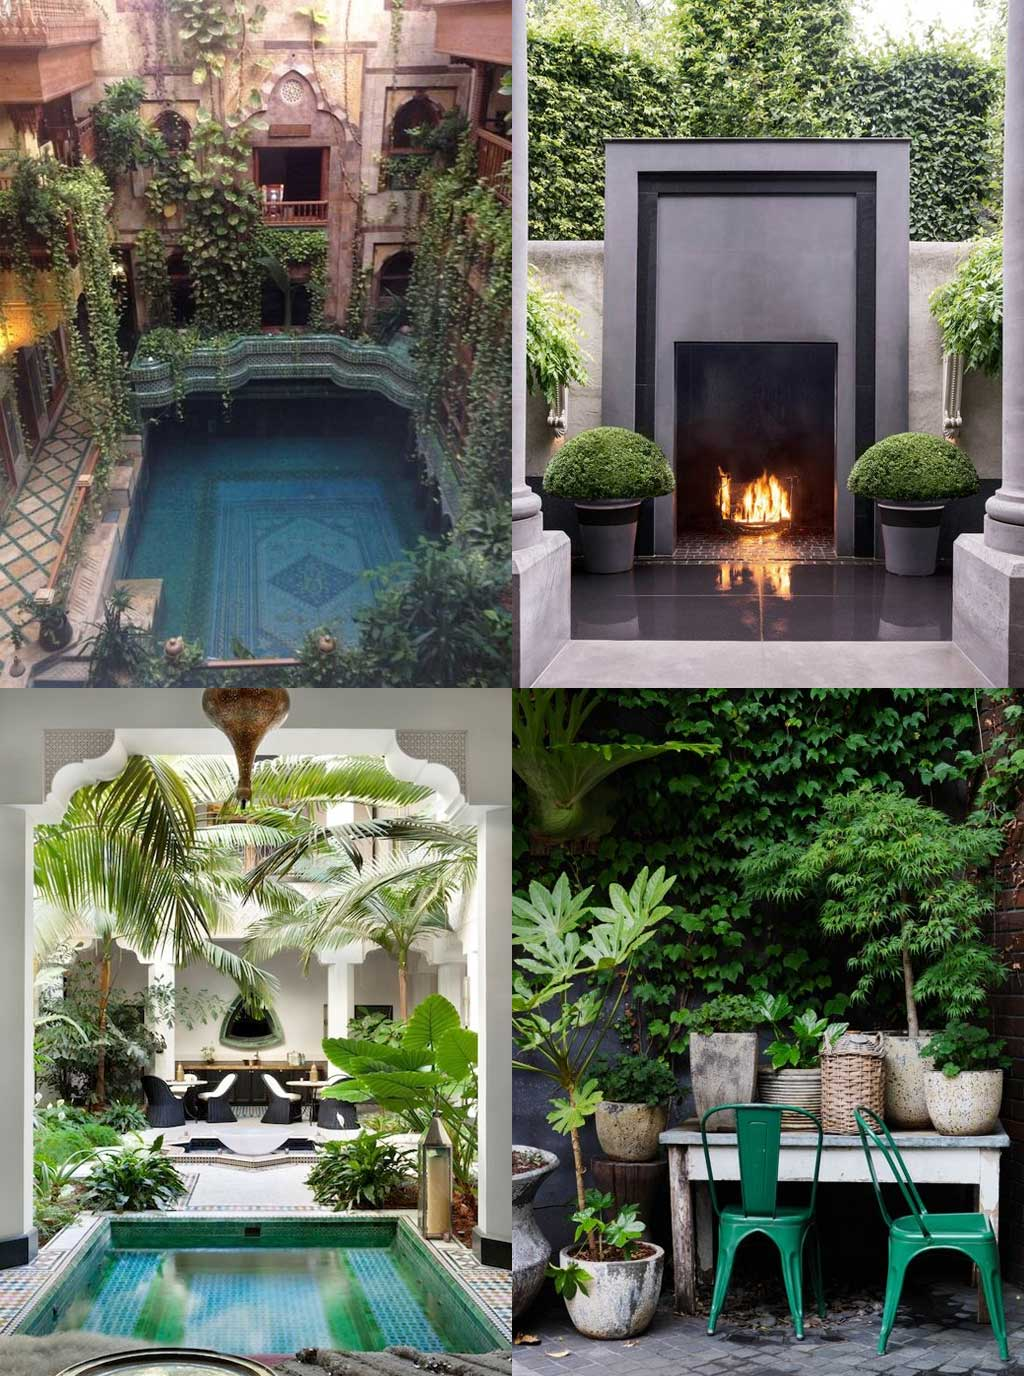 Patio and Garden Design Ideas on Hutsly - Pinterest Inspiration